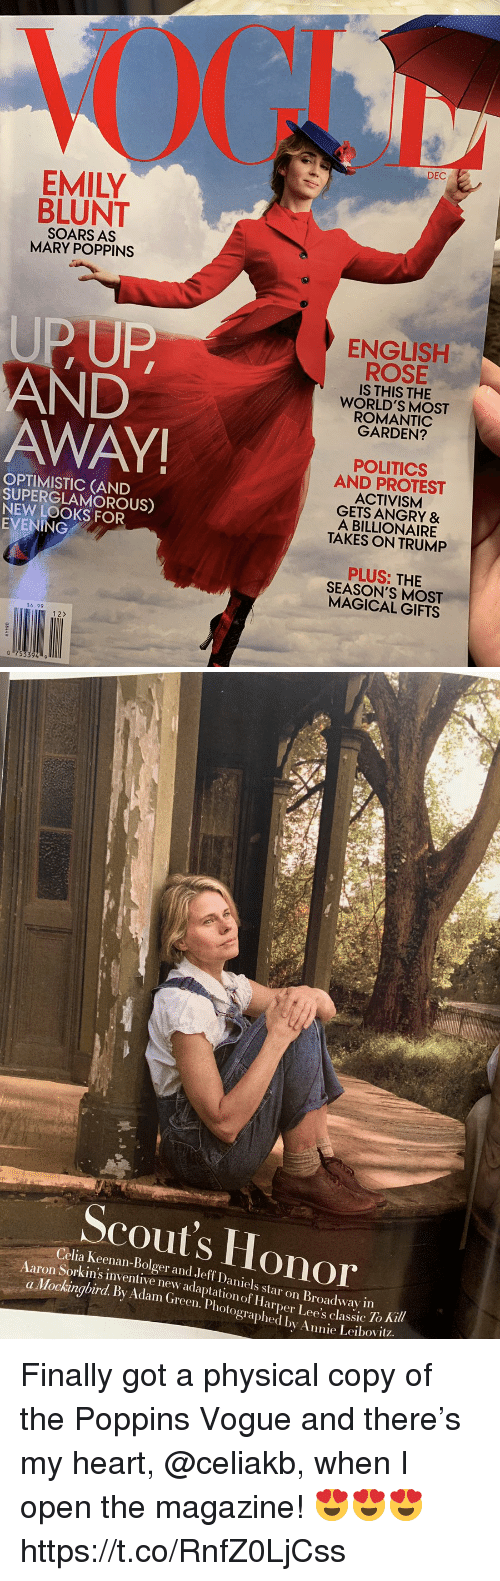 vogue: DEC  EMILY  BLUNT  SOARS AS  MARY POPPINS  UPUP  AND  AWAY  ENGLISH  ROSE  IS THIS THE  WORLD'S MOST  ROMANTIC  GARDEN?  OPTIMISTIC (AND  SUPERGLAMOROUS)  NEW LOOKS FOR  EVENING  POLITICS  AND PROTEST  ACTIVISM  GETS ANGRY &  A BILLIONAIRE  TAKES ON TRUMP  PLUS: THIE  SEASON'S MOST  MAGICAL GIFTS  $6.99  12>   Scout's Honor  Celia Keenan-Bolger and Jeff Daniels star on Broadway in  Sorkin's inventive new adaptation of Harper Lee's classic 10  To Ki  a Mockingbird. By Adam (Green. Photographed by Annie Leibovit? Finally got a physical copy of the Poppins Vogue and there's my heart, @celiakb, when I open the magazine! 😍😍😍 https://t.co/RnfZ0LjCss